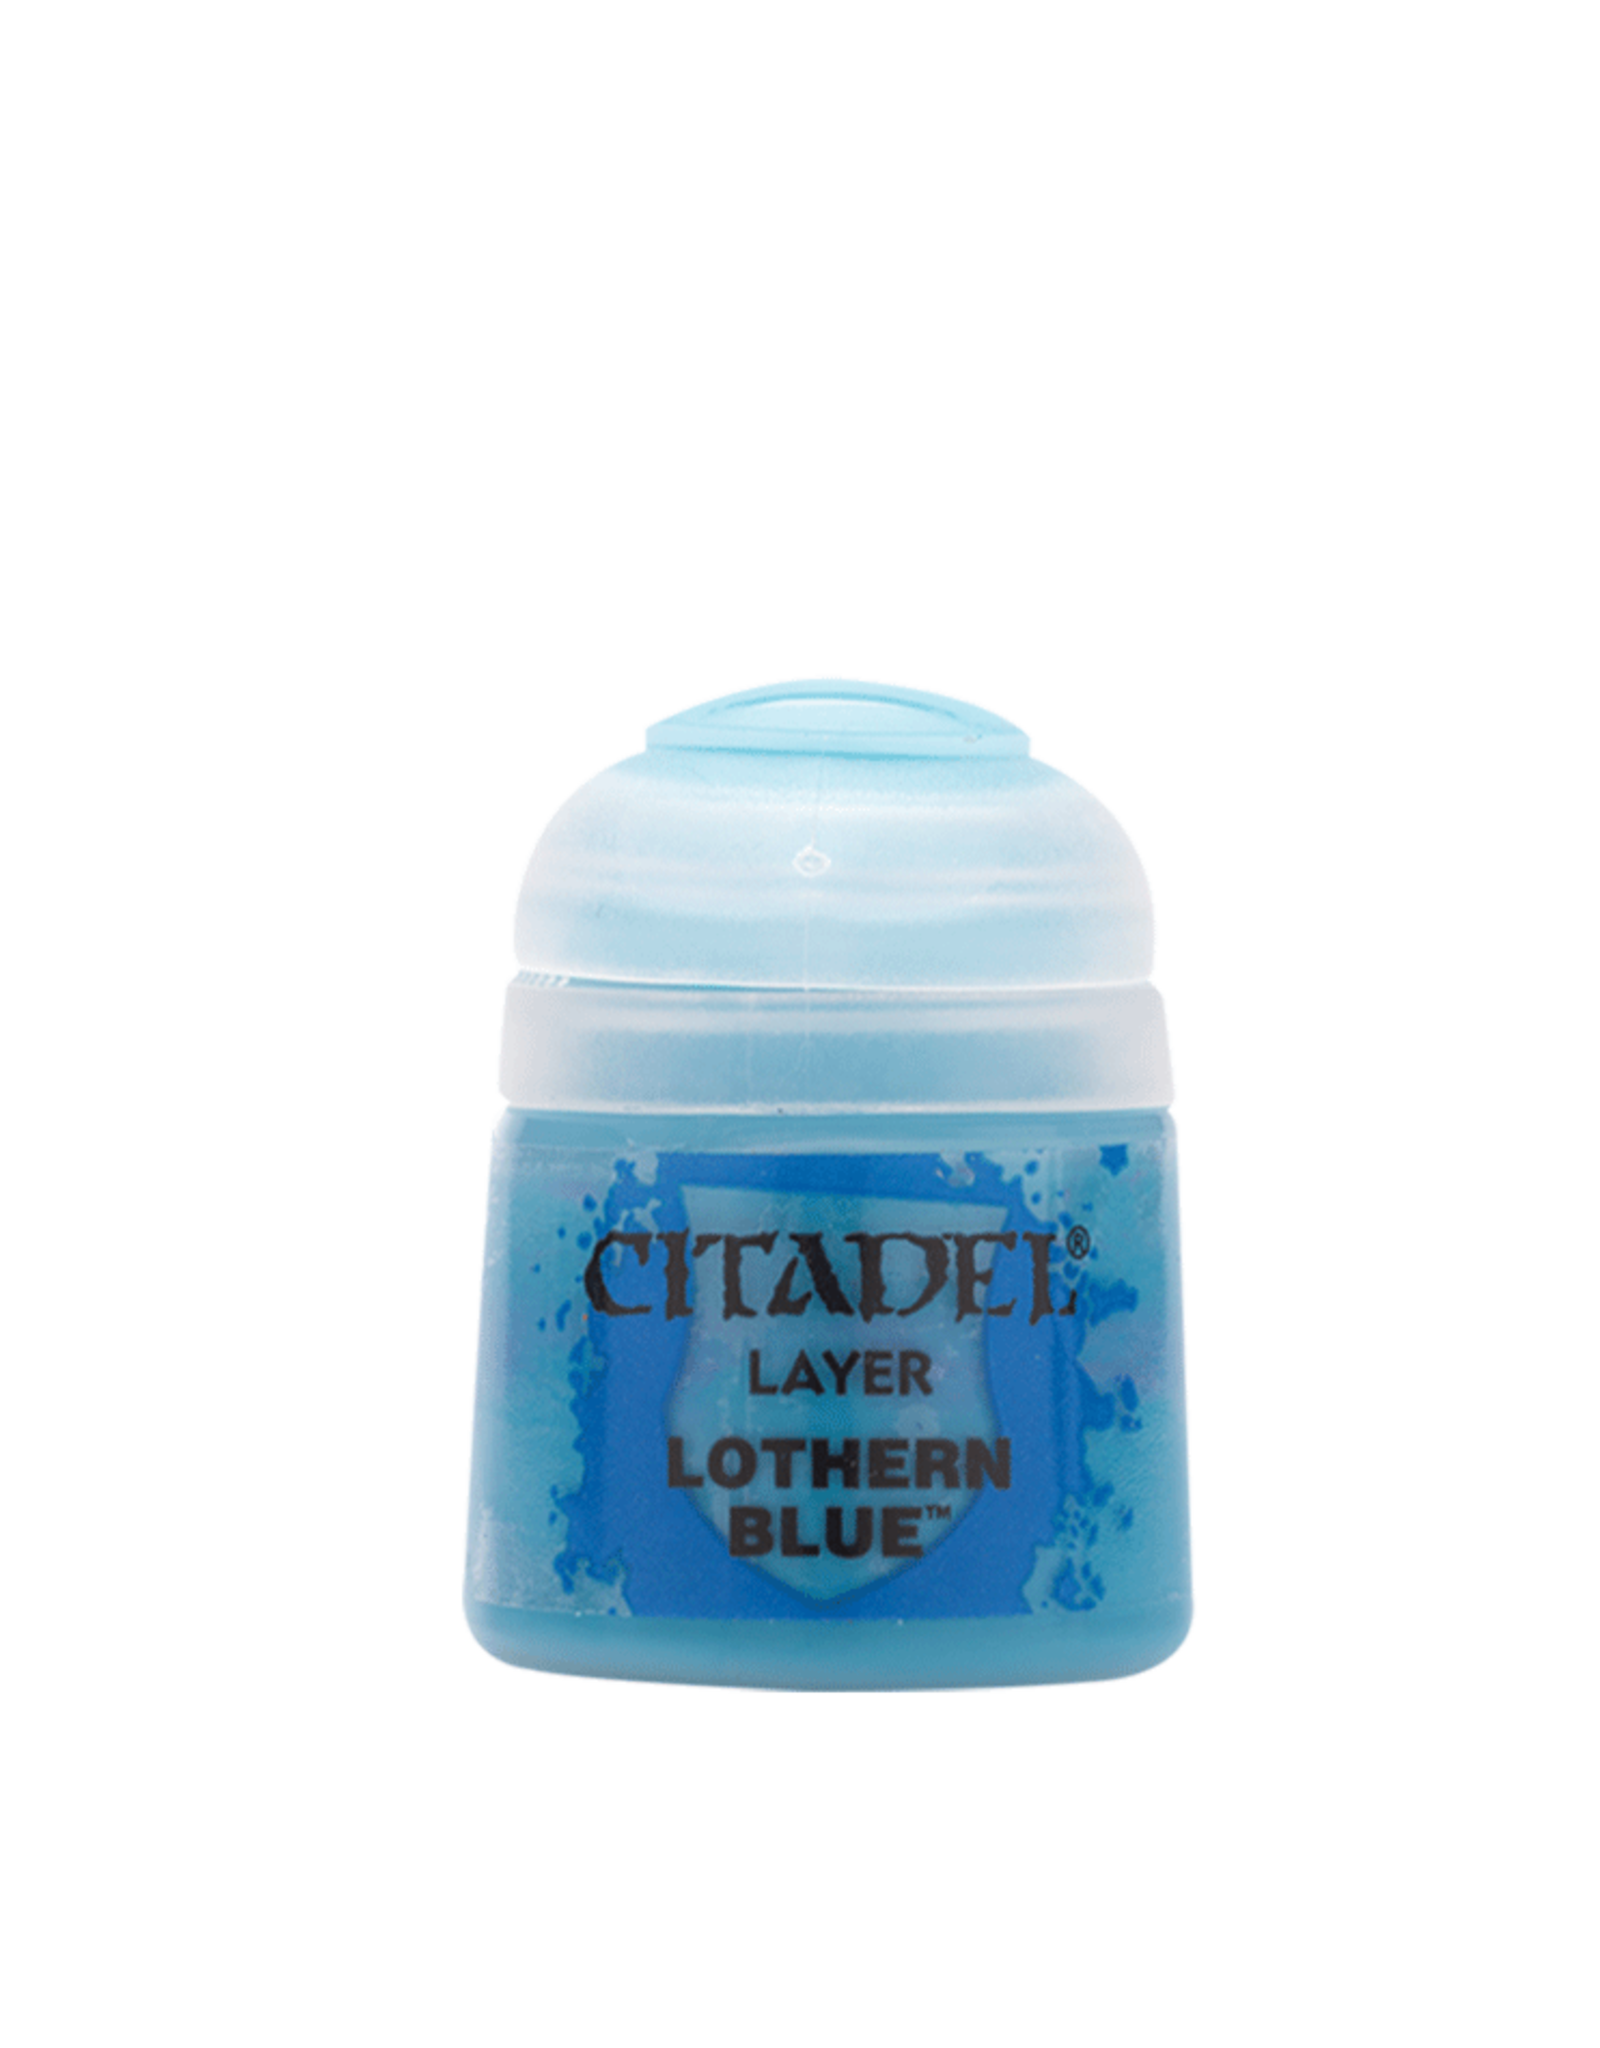 Games Workshop Citadel Layer: Lothern Blue